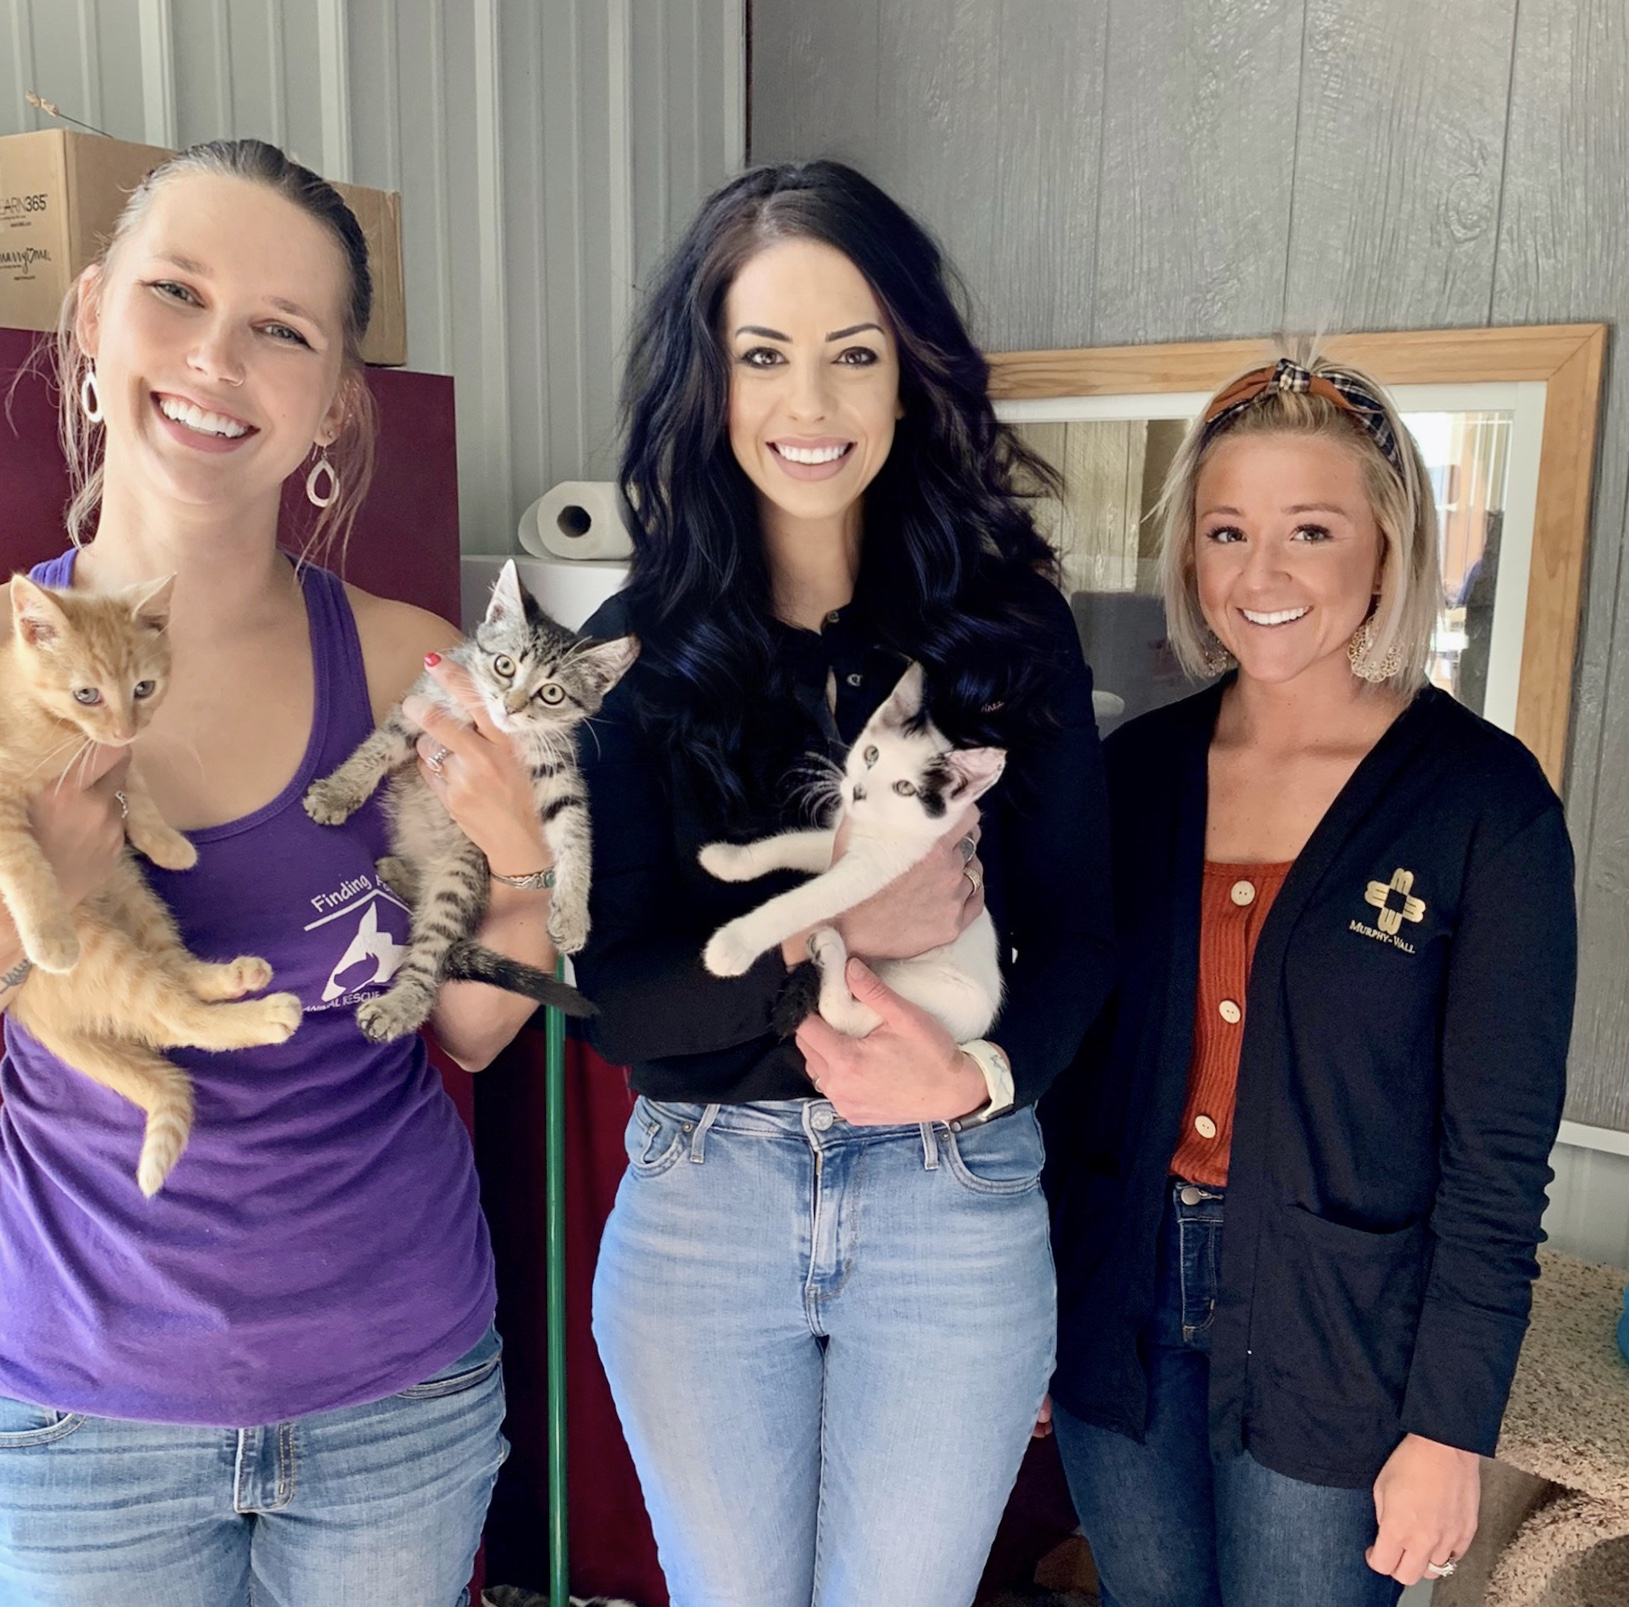 Murphy-Wall State Bank Marion Branch Manager, Bailey Thompson, and Assistant Branch Manager, Ashley Fosse, hold cats while presenting the FHLB COVID relief donation to Finding Forever Animal Shelter of Marion Director, Becca Baird